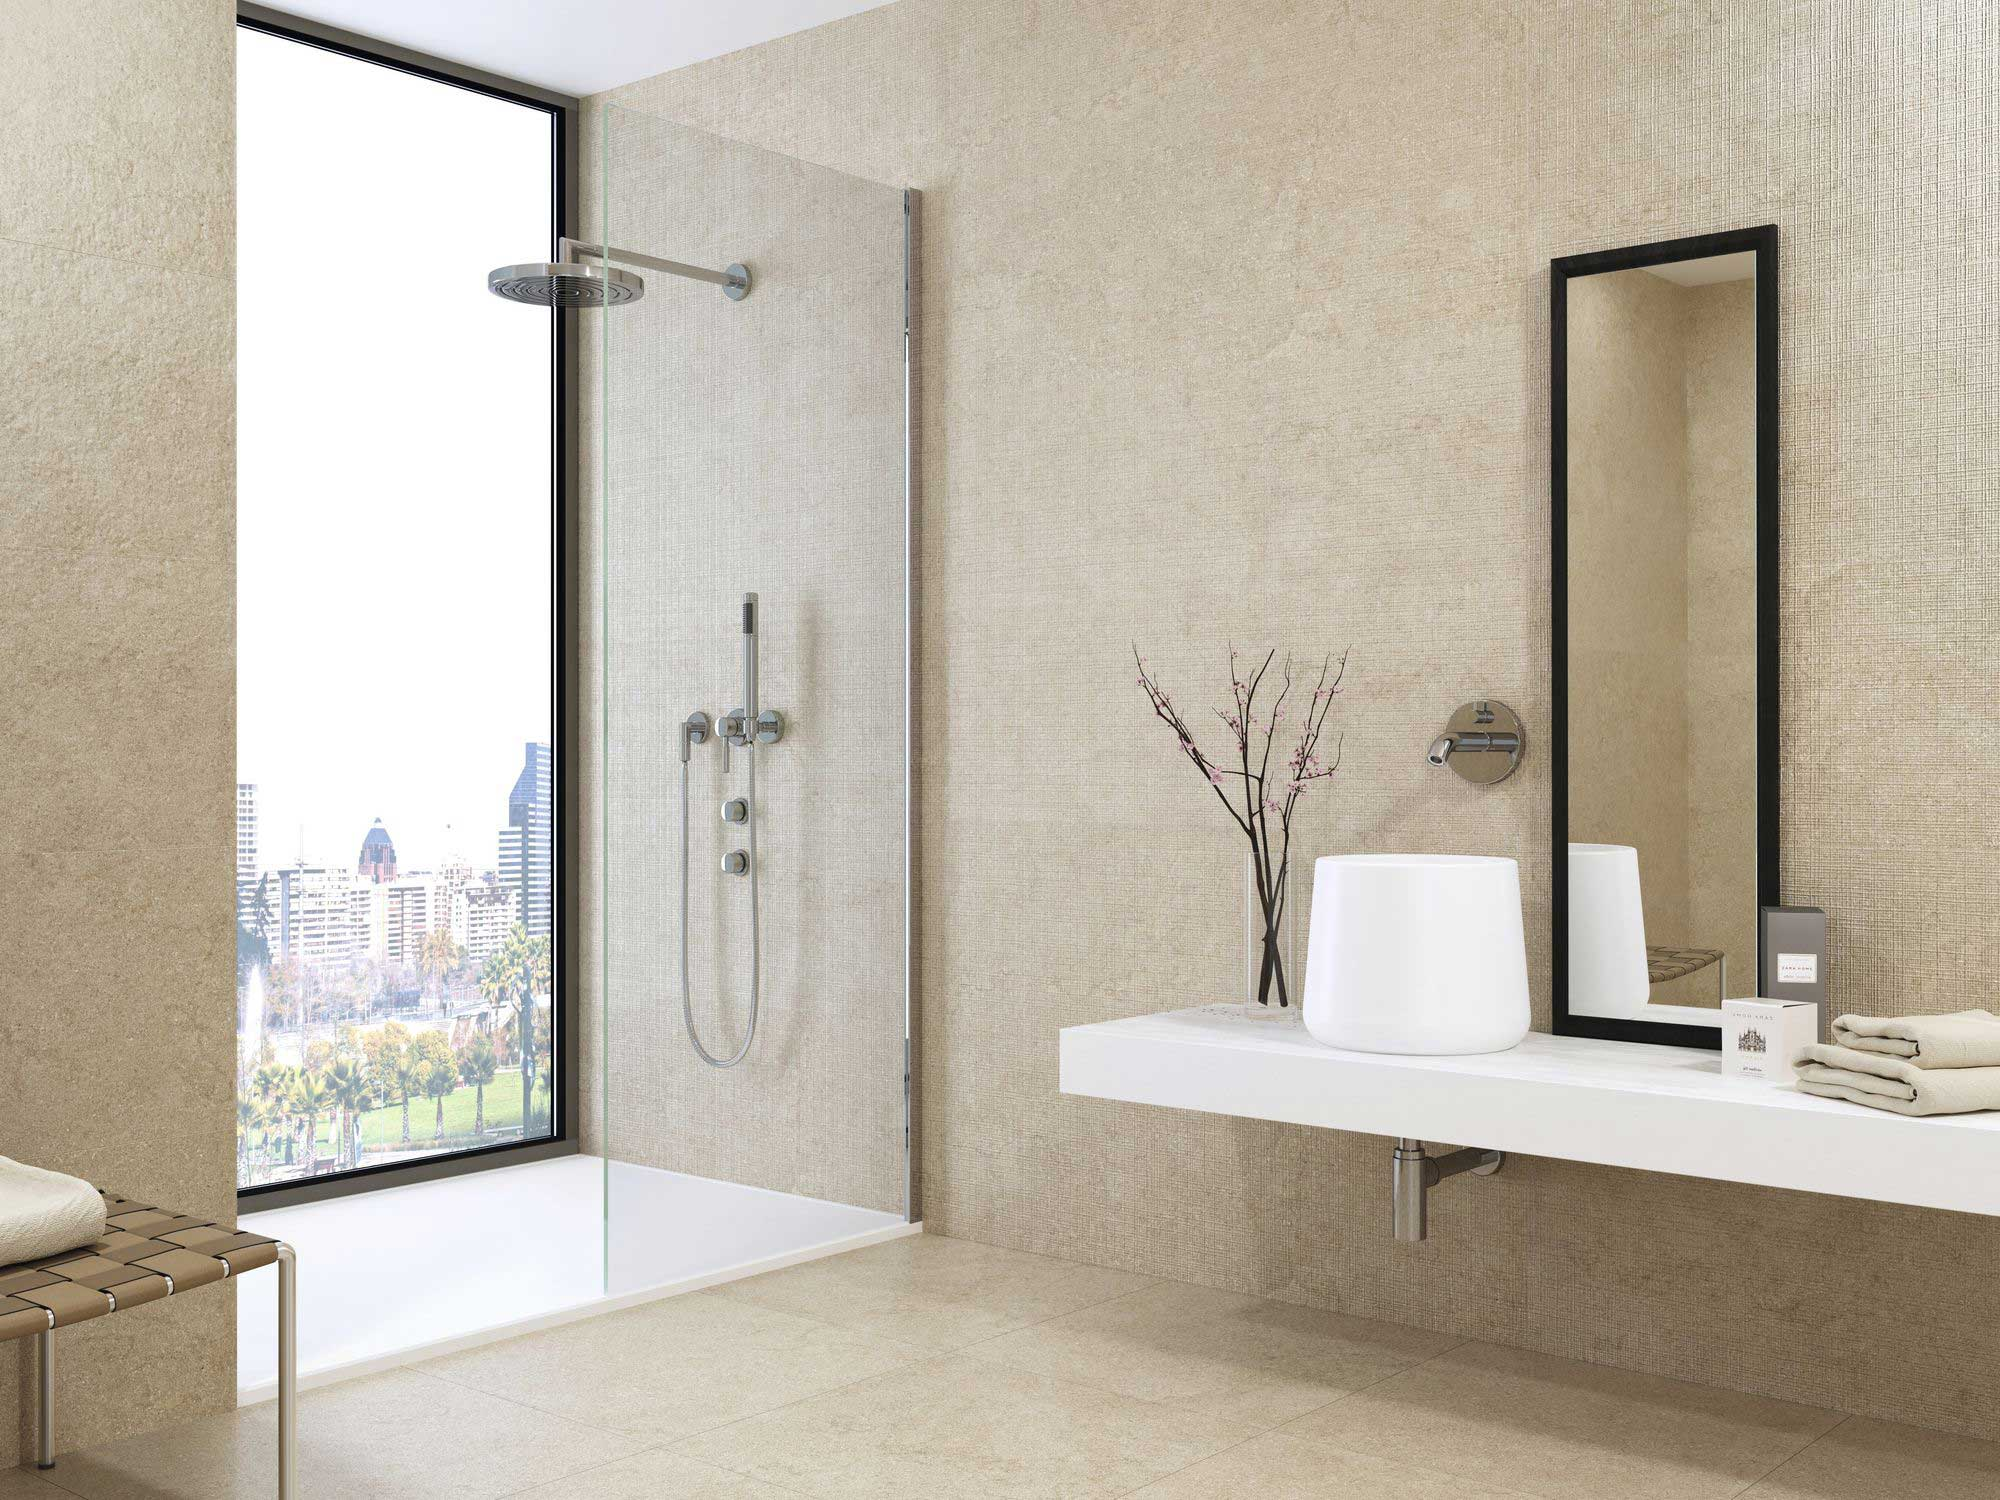 Beige tiled bathroom